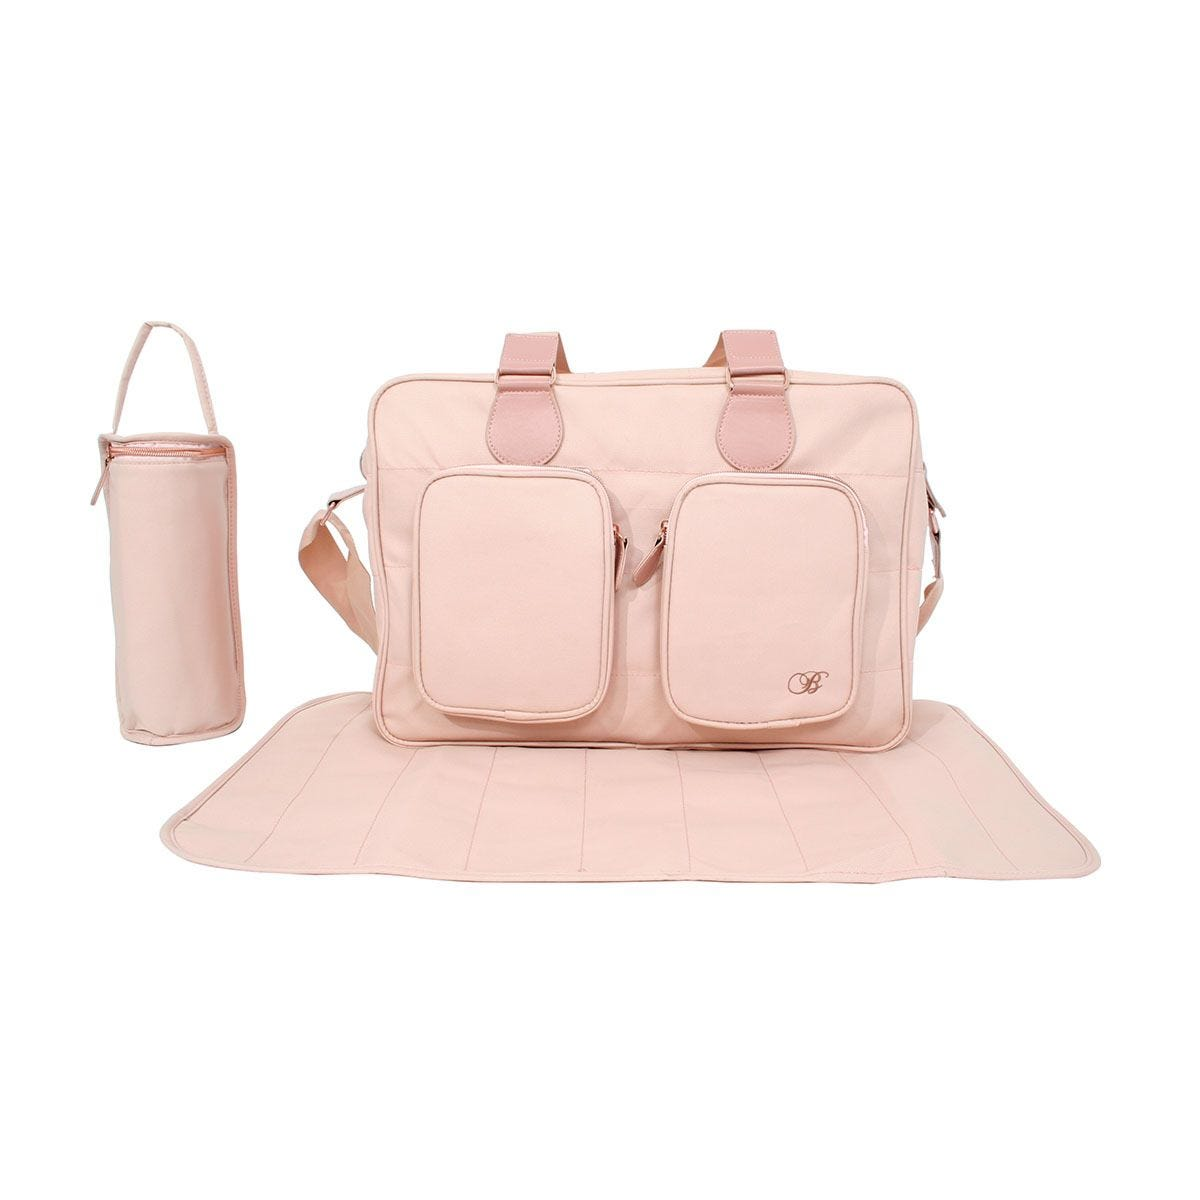 My Babiie Billie Faiers Deluxe Changing Bag - Blush